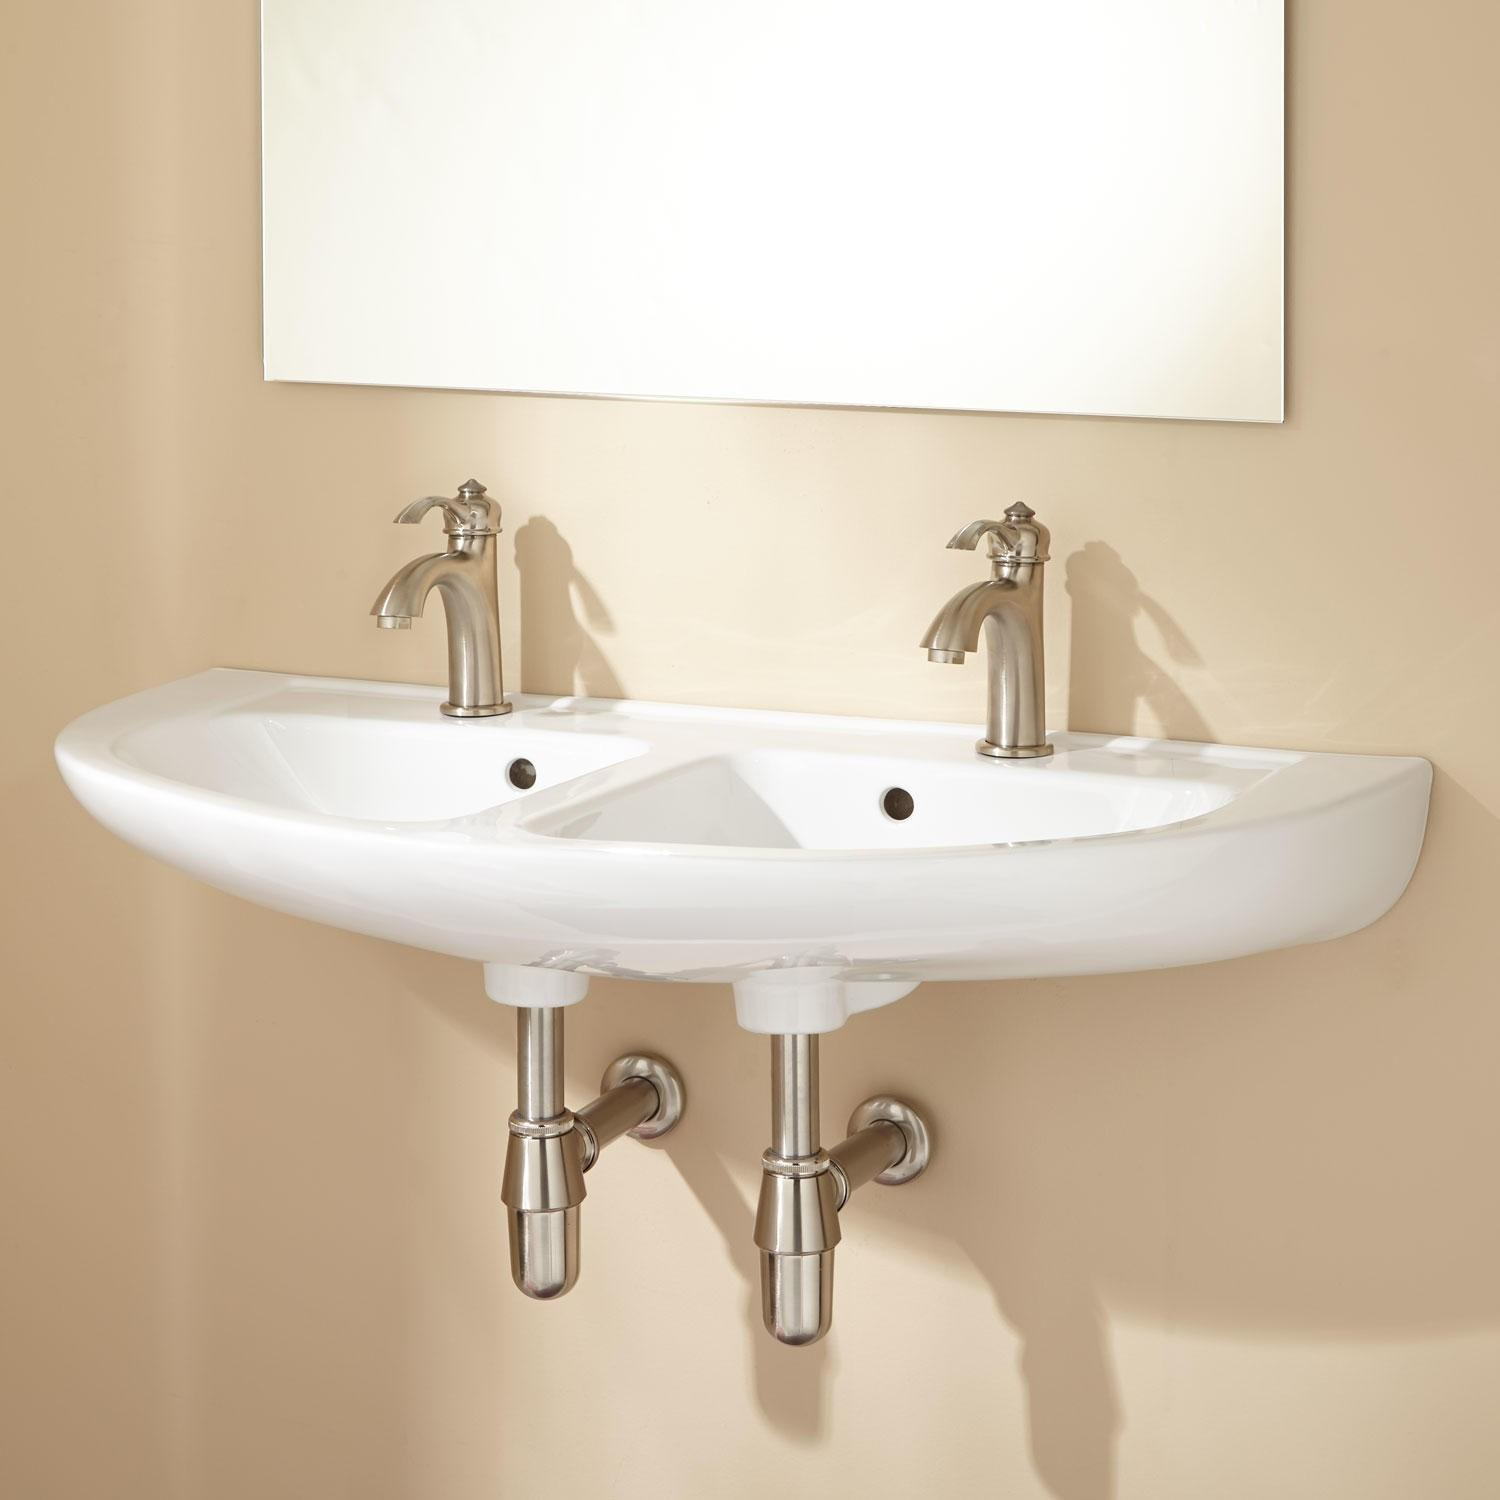 Cassin Double Bowl Porcelain Wall Mount Bathroom Sink